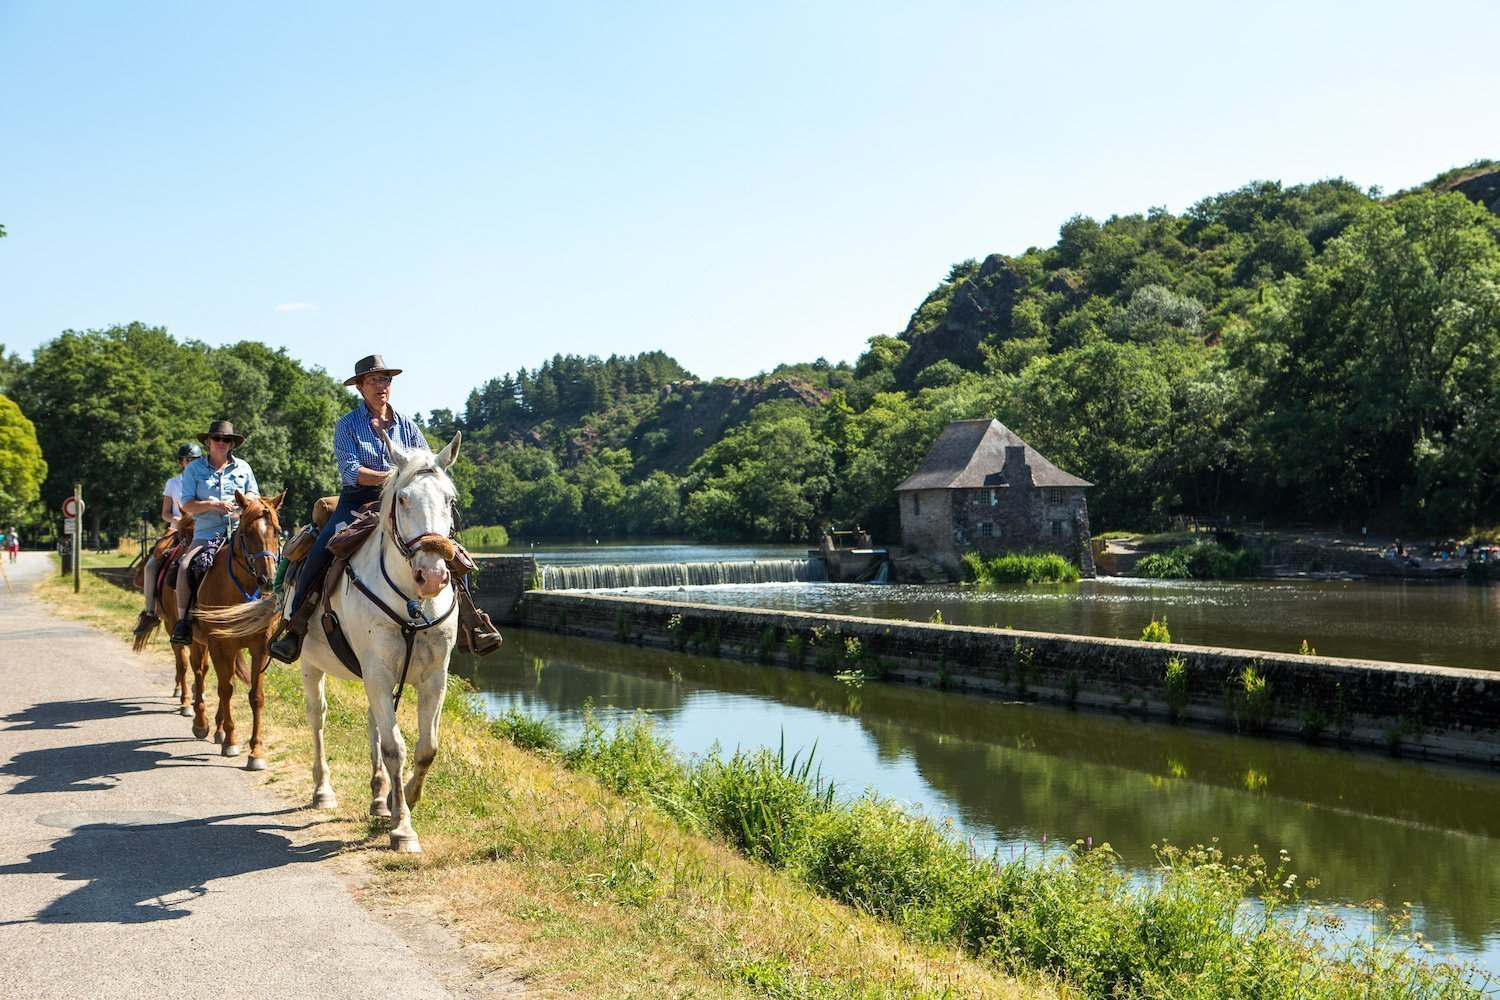 Horse ride at the Moulin du Boël in Bruz